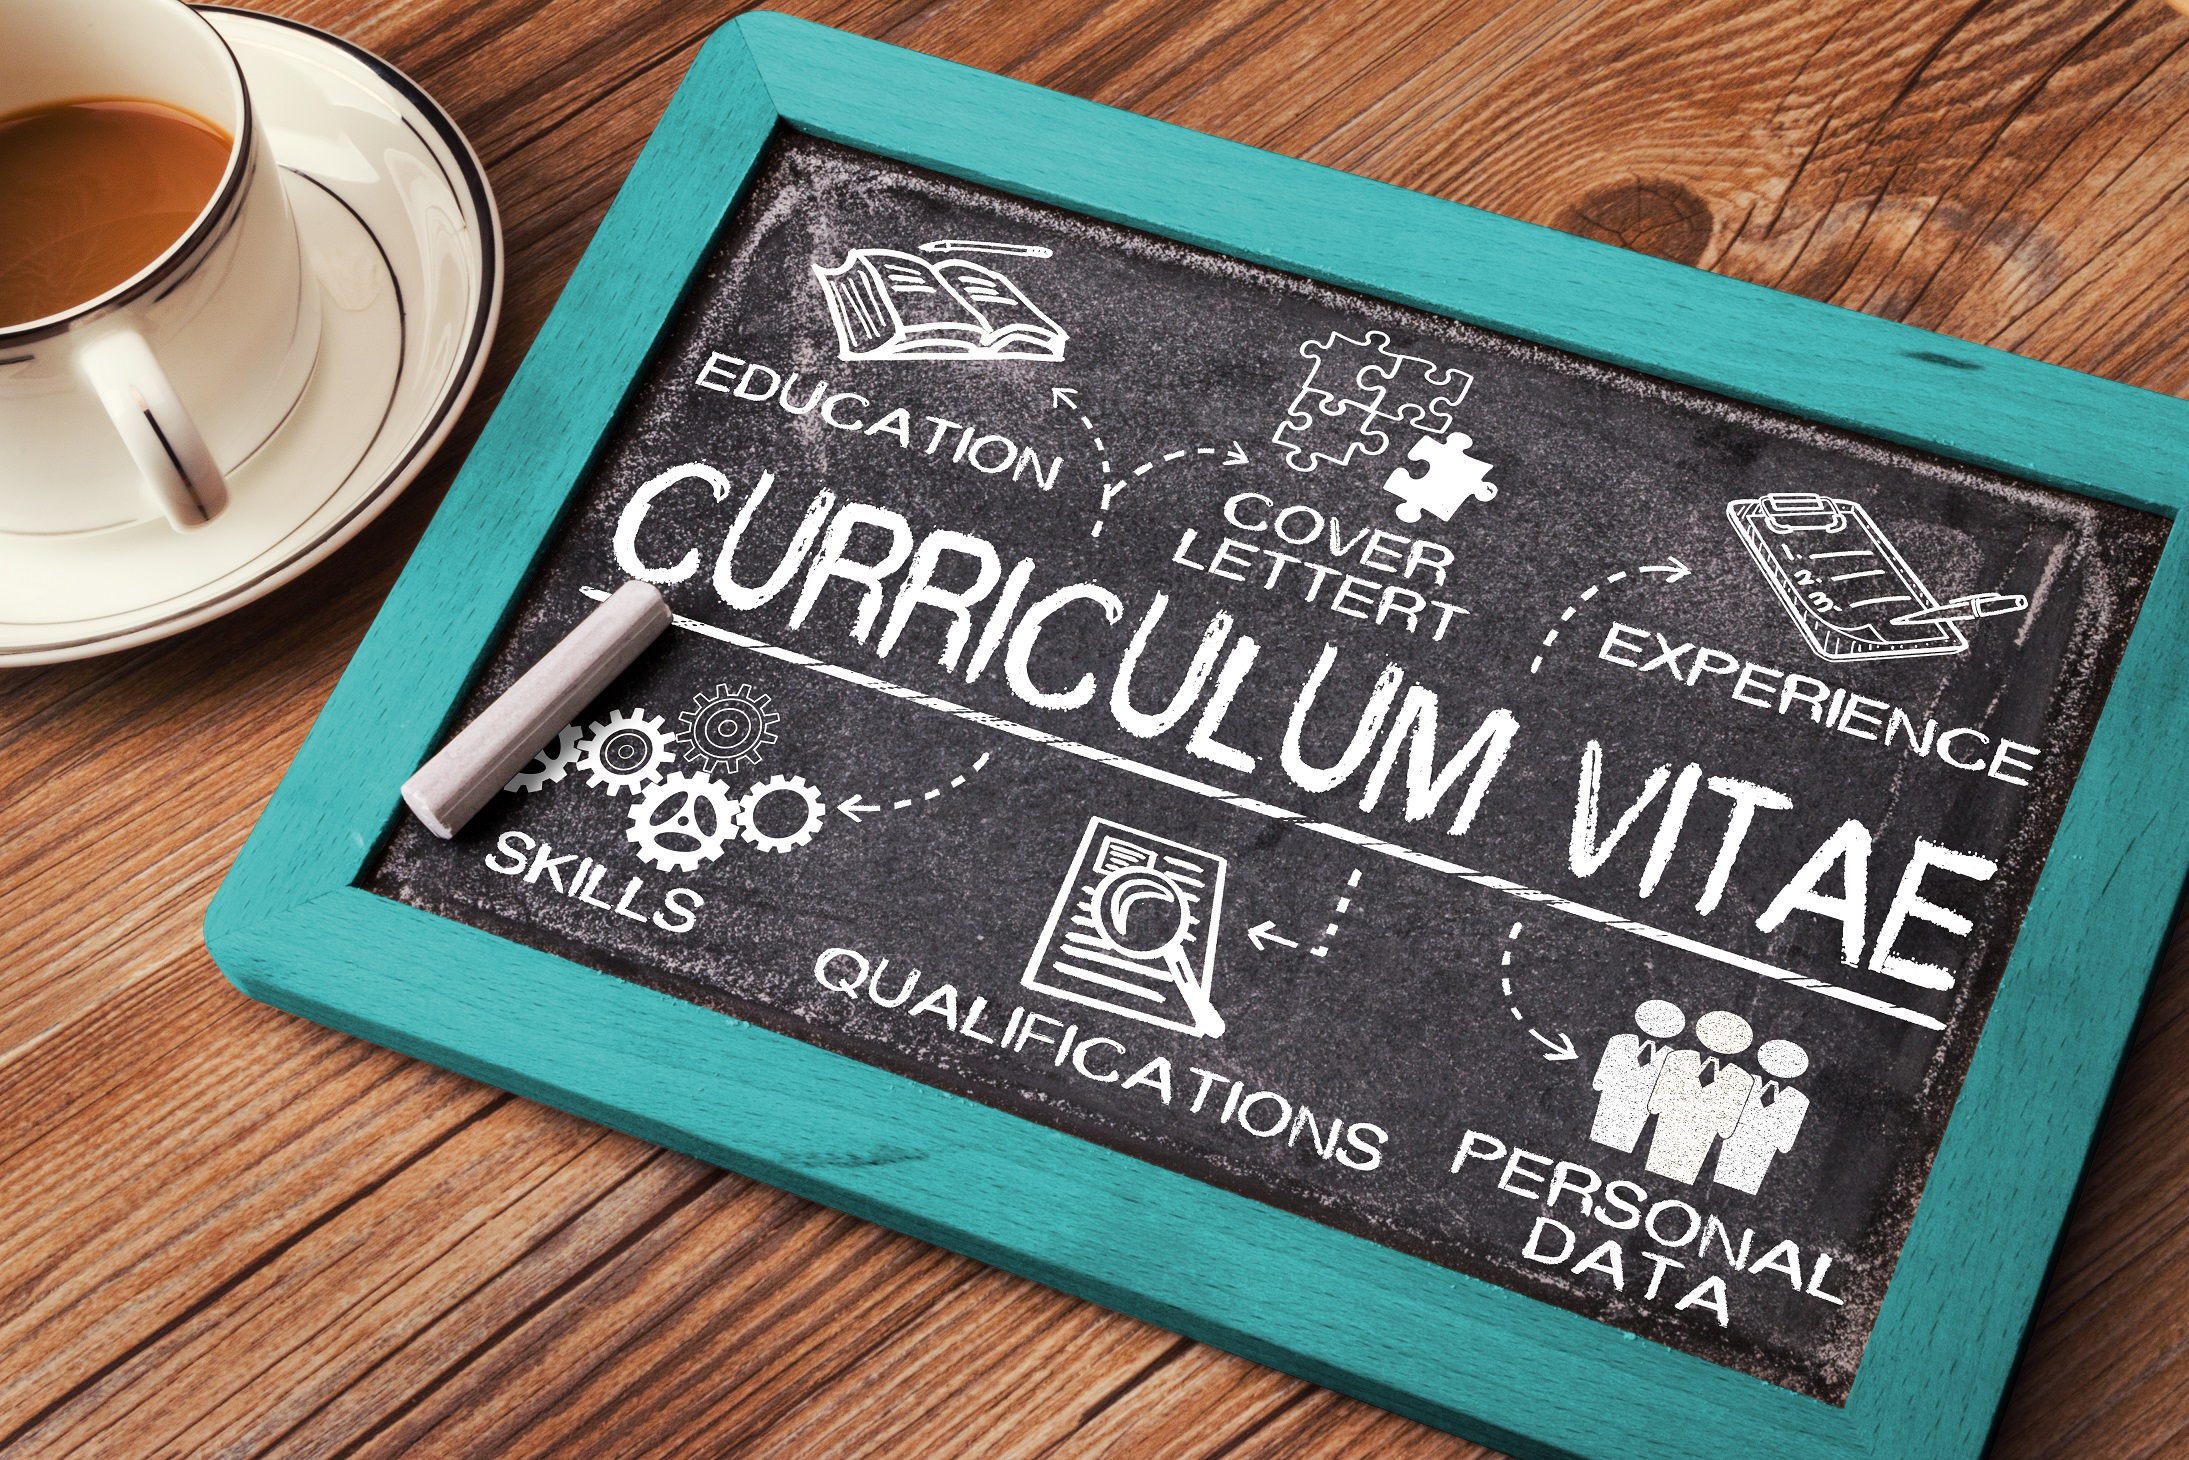 Photo of curriculum vitae and laptop